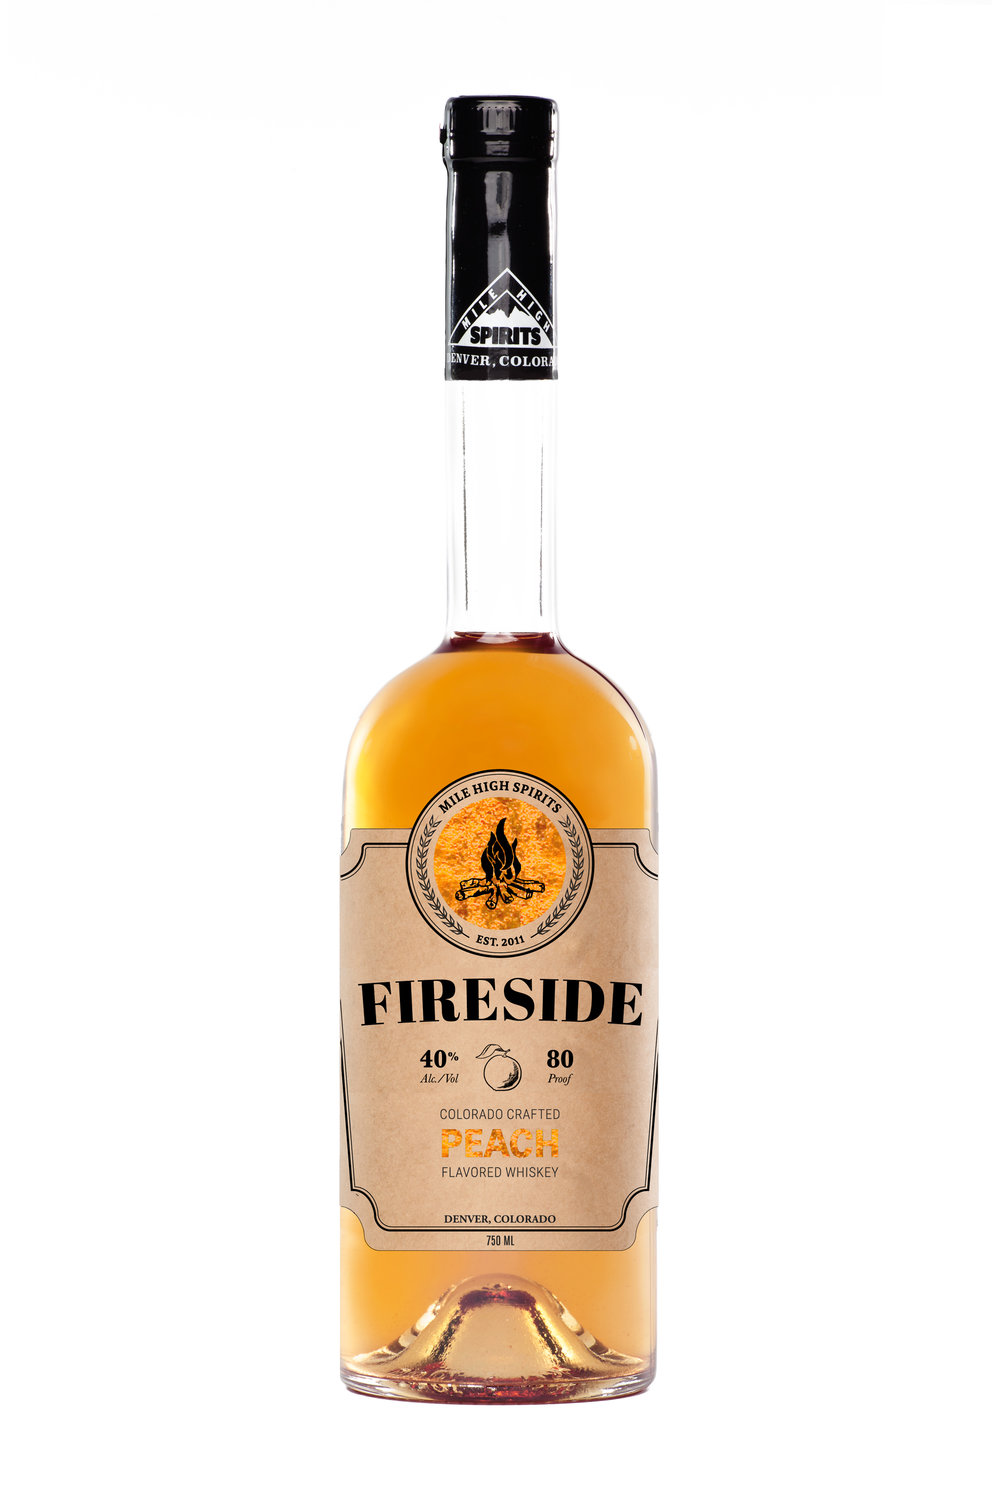 "Fireside Peach All-natural peach flavor compliments the smooth, smoky profile of our flagship Fireside brand. Subtle Palisade peach notes on the nose and back of your pallet make this ""the flavored whiskey for the serious whiskey drinker""."